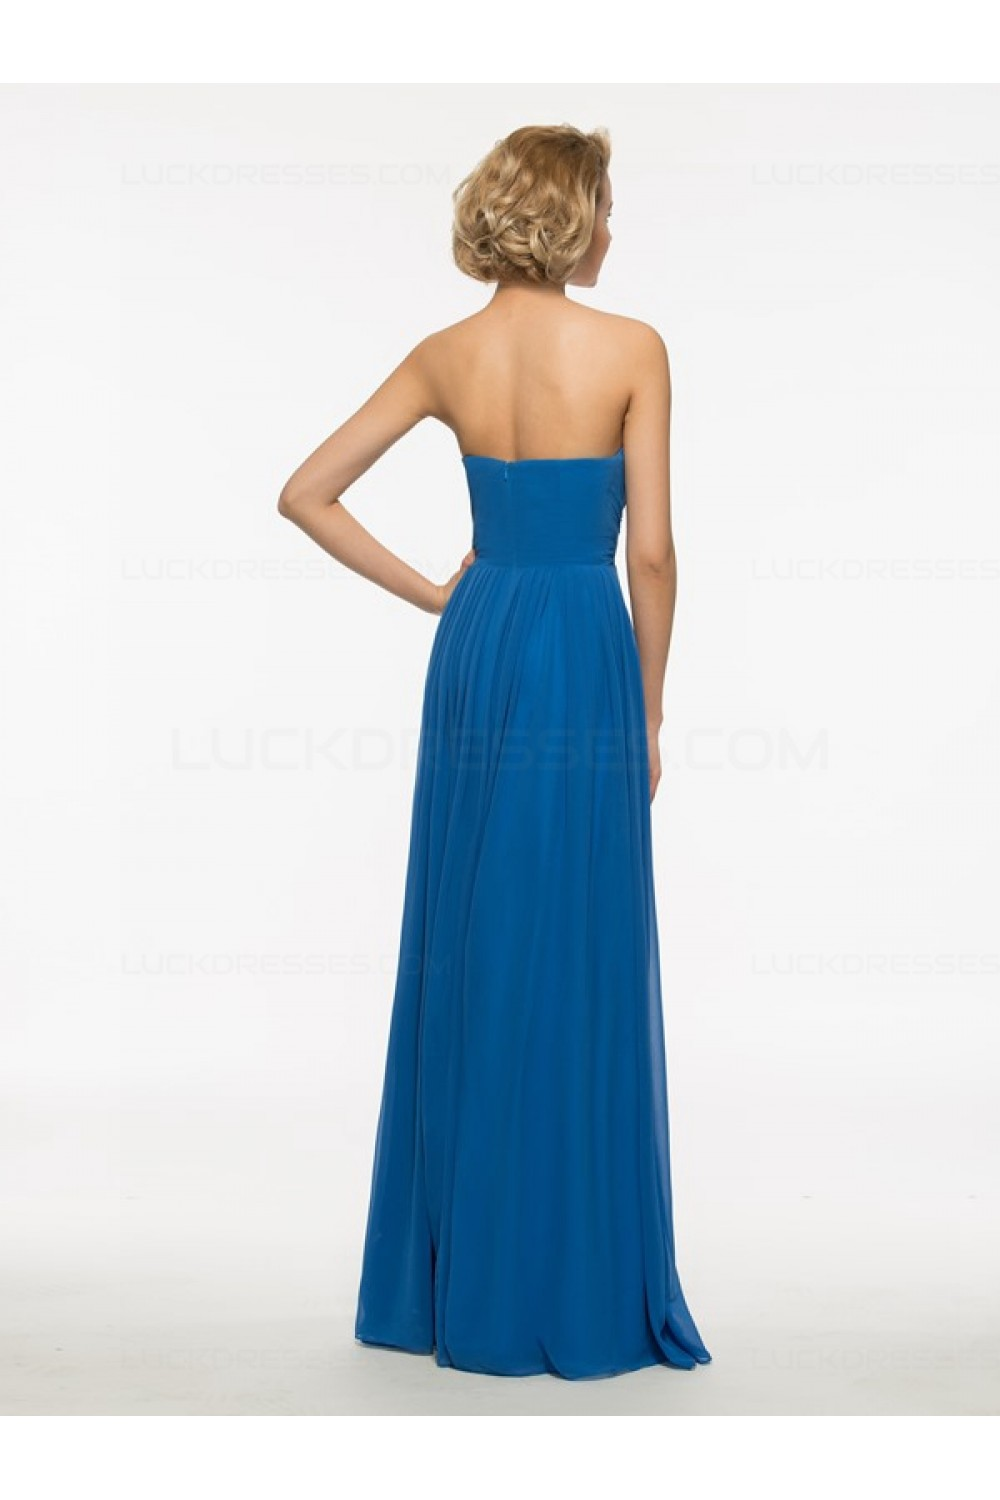 Long Blue Chiffon Mother Of The Bride Dresses With A